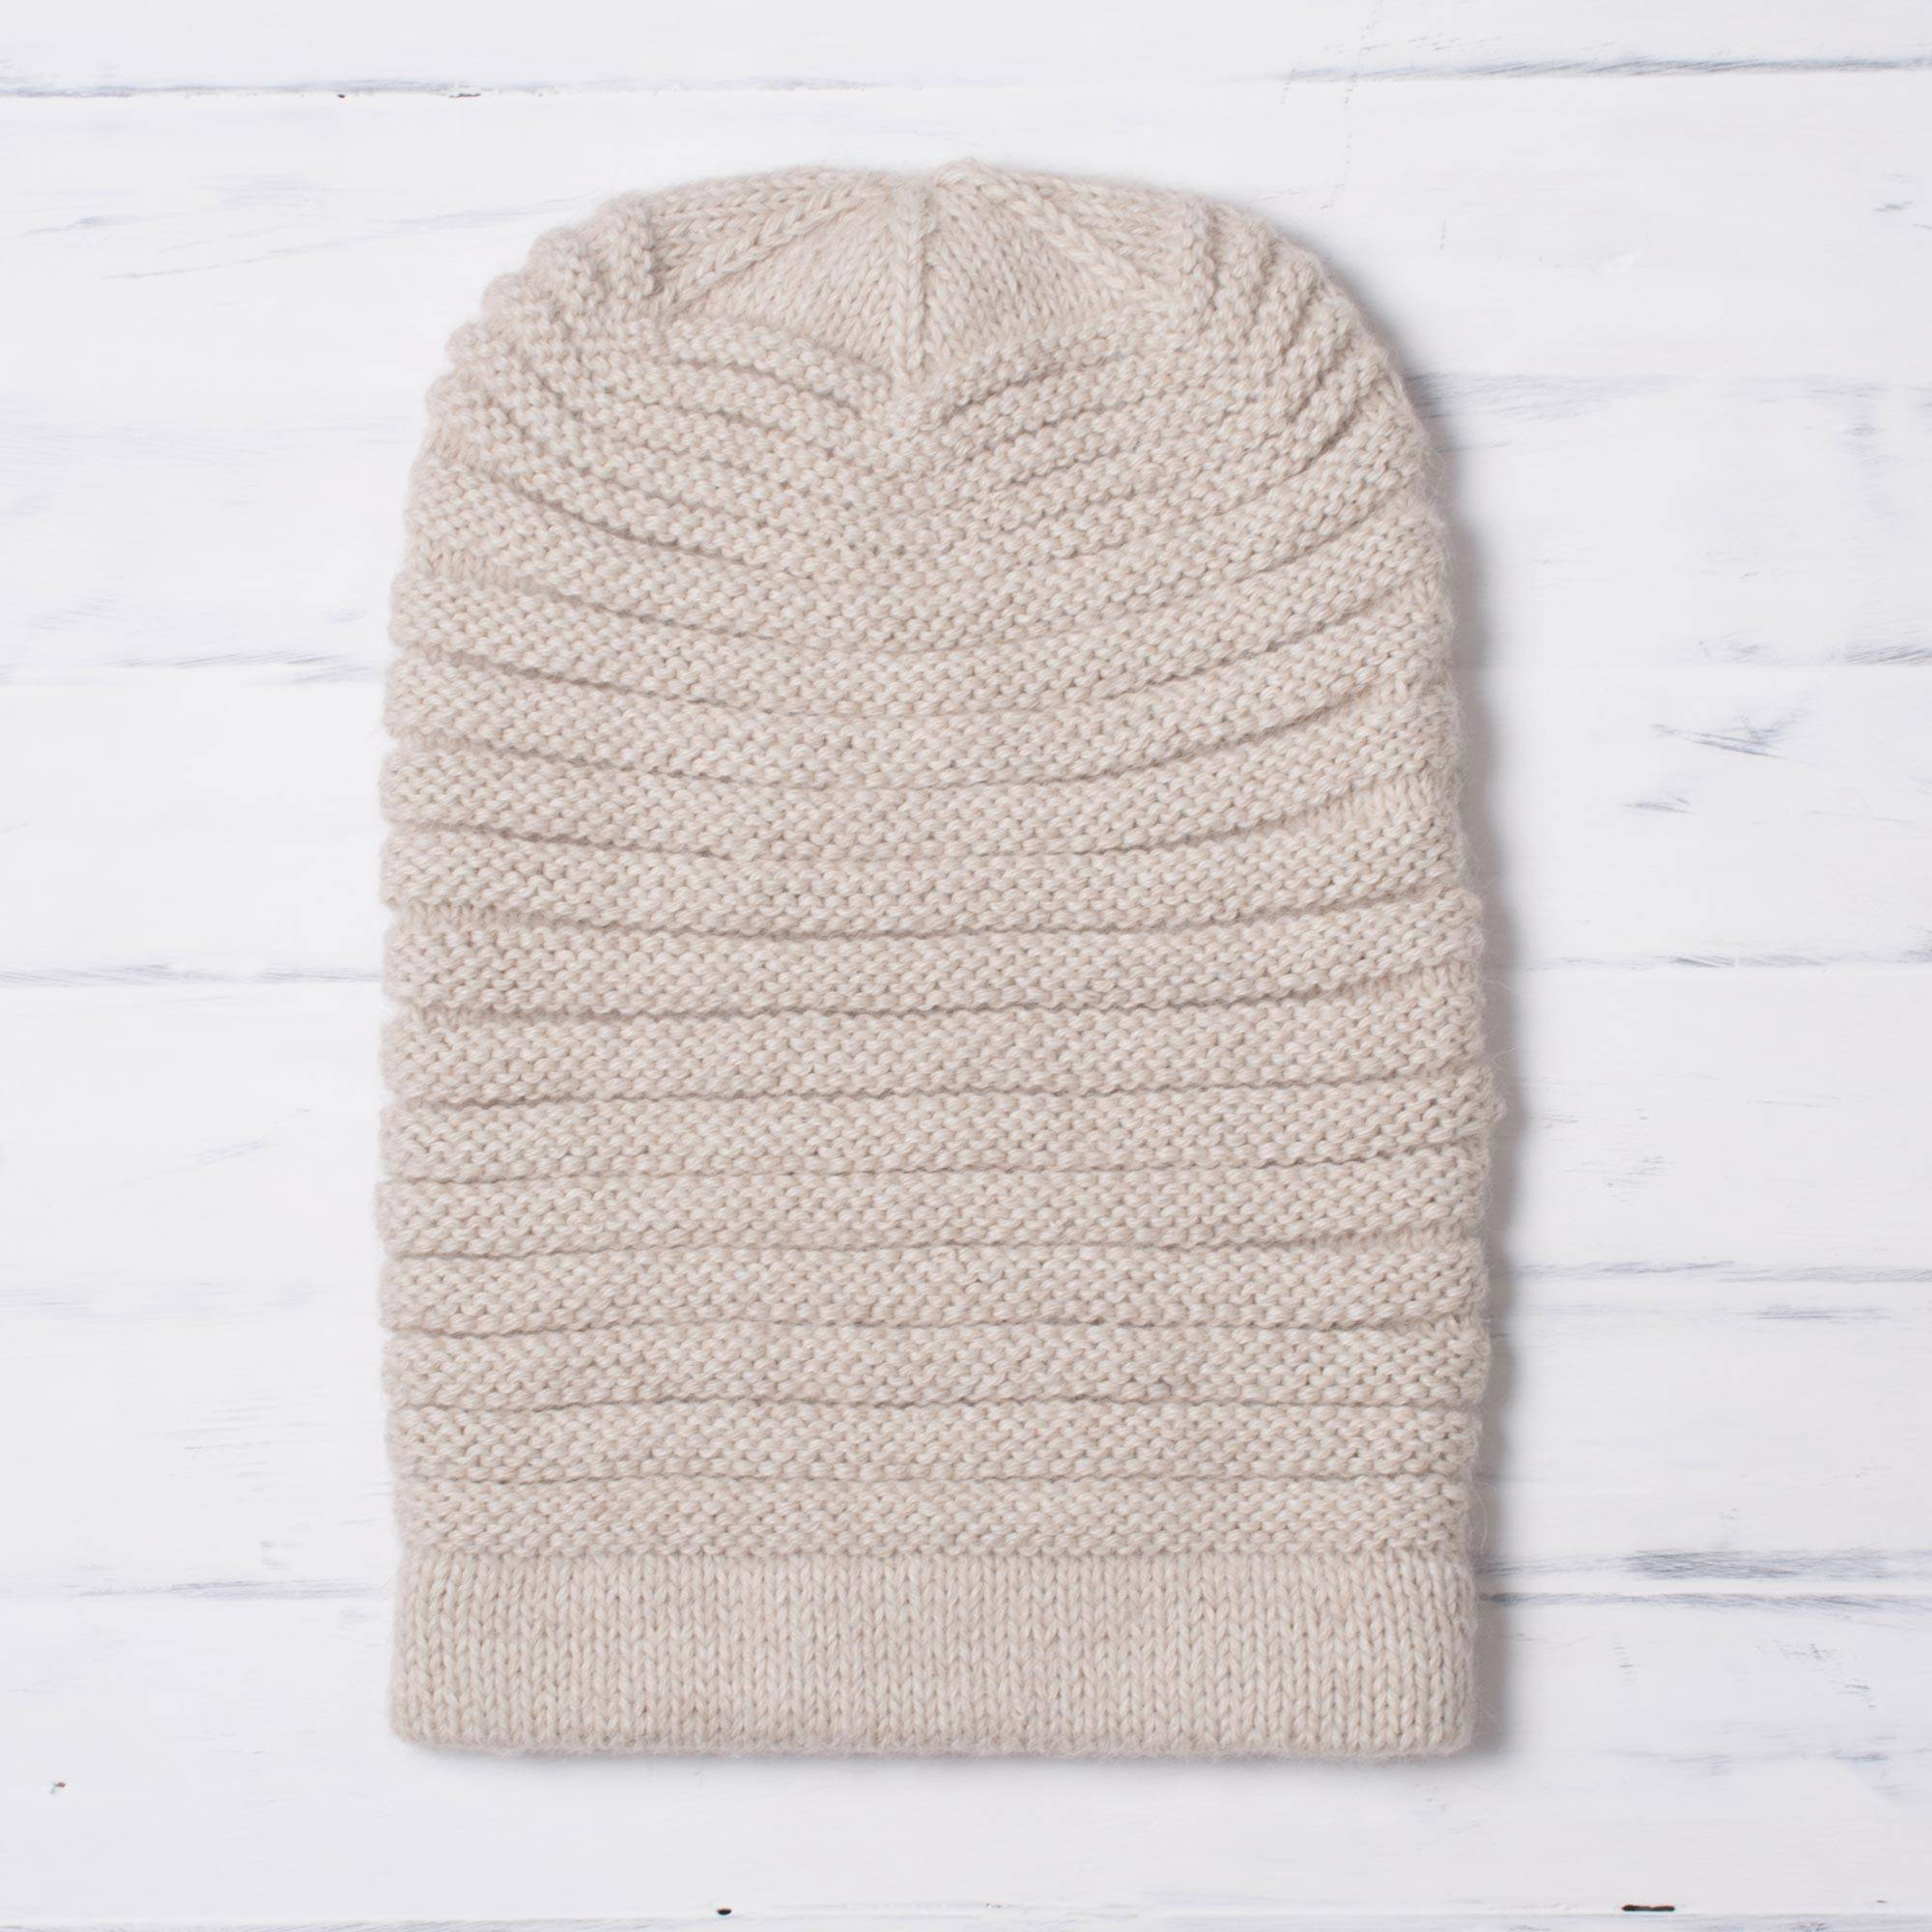 3c7f027dfd6 Ivory Alpaca Blend Welt Pattern Hand Knit Hat from Peru - Layers in ...